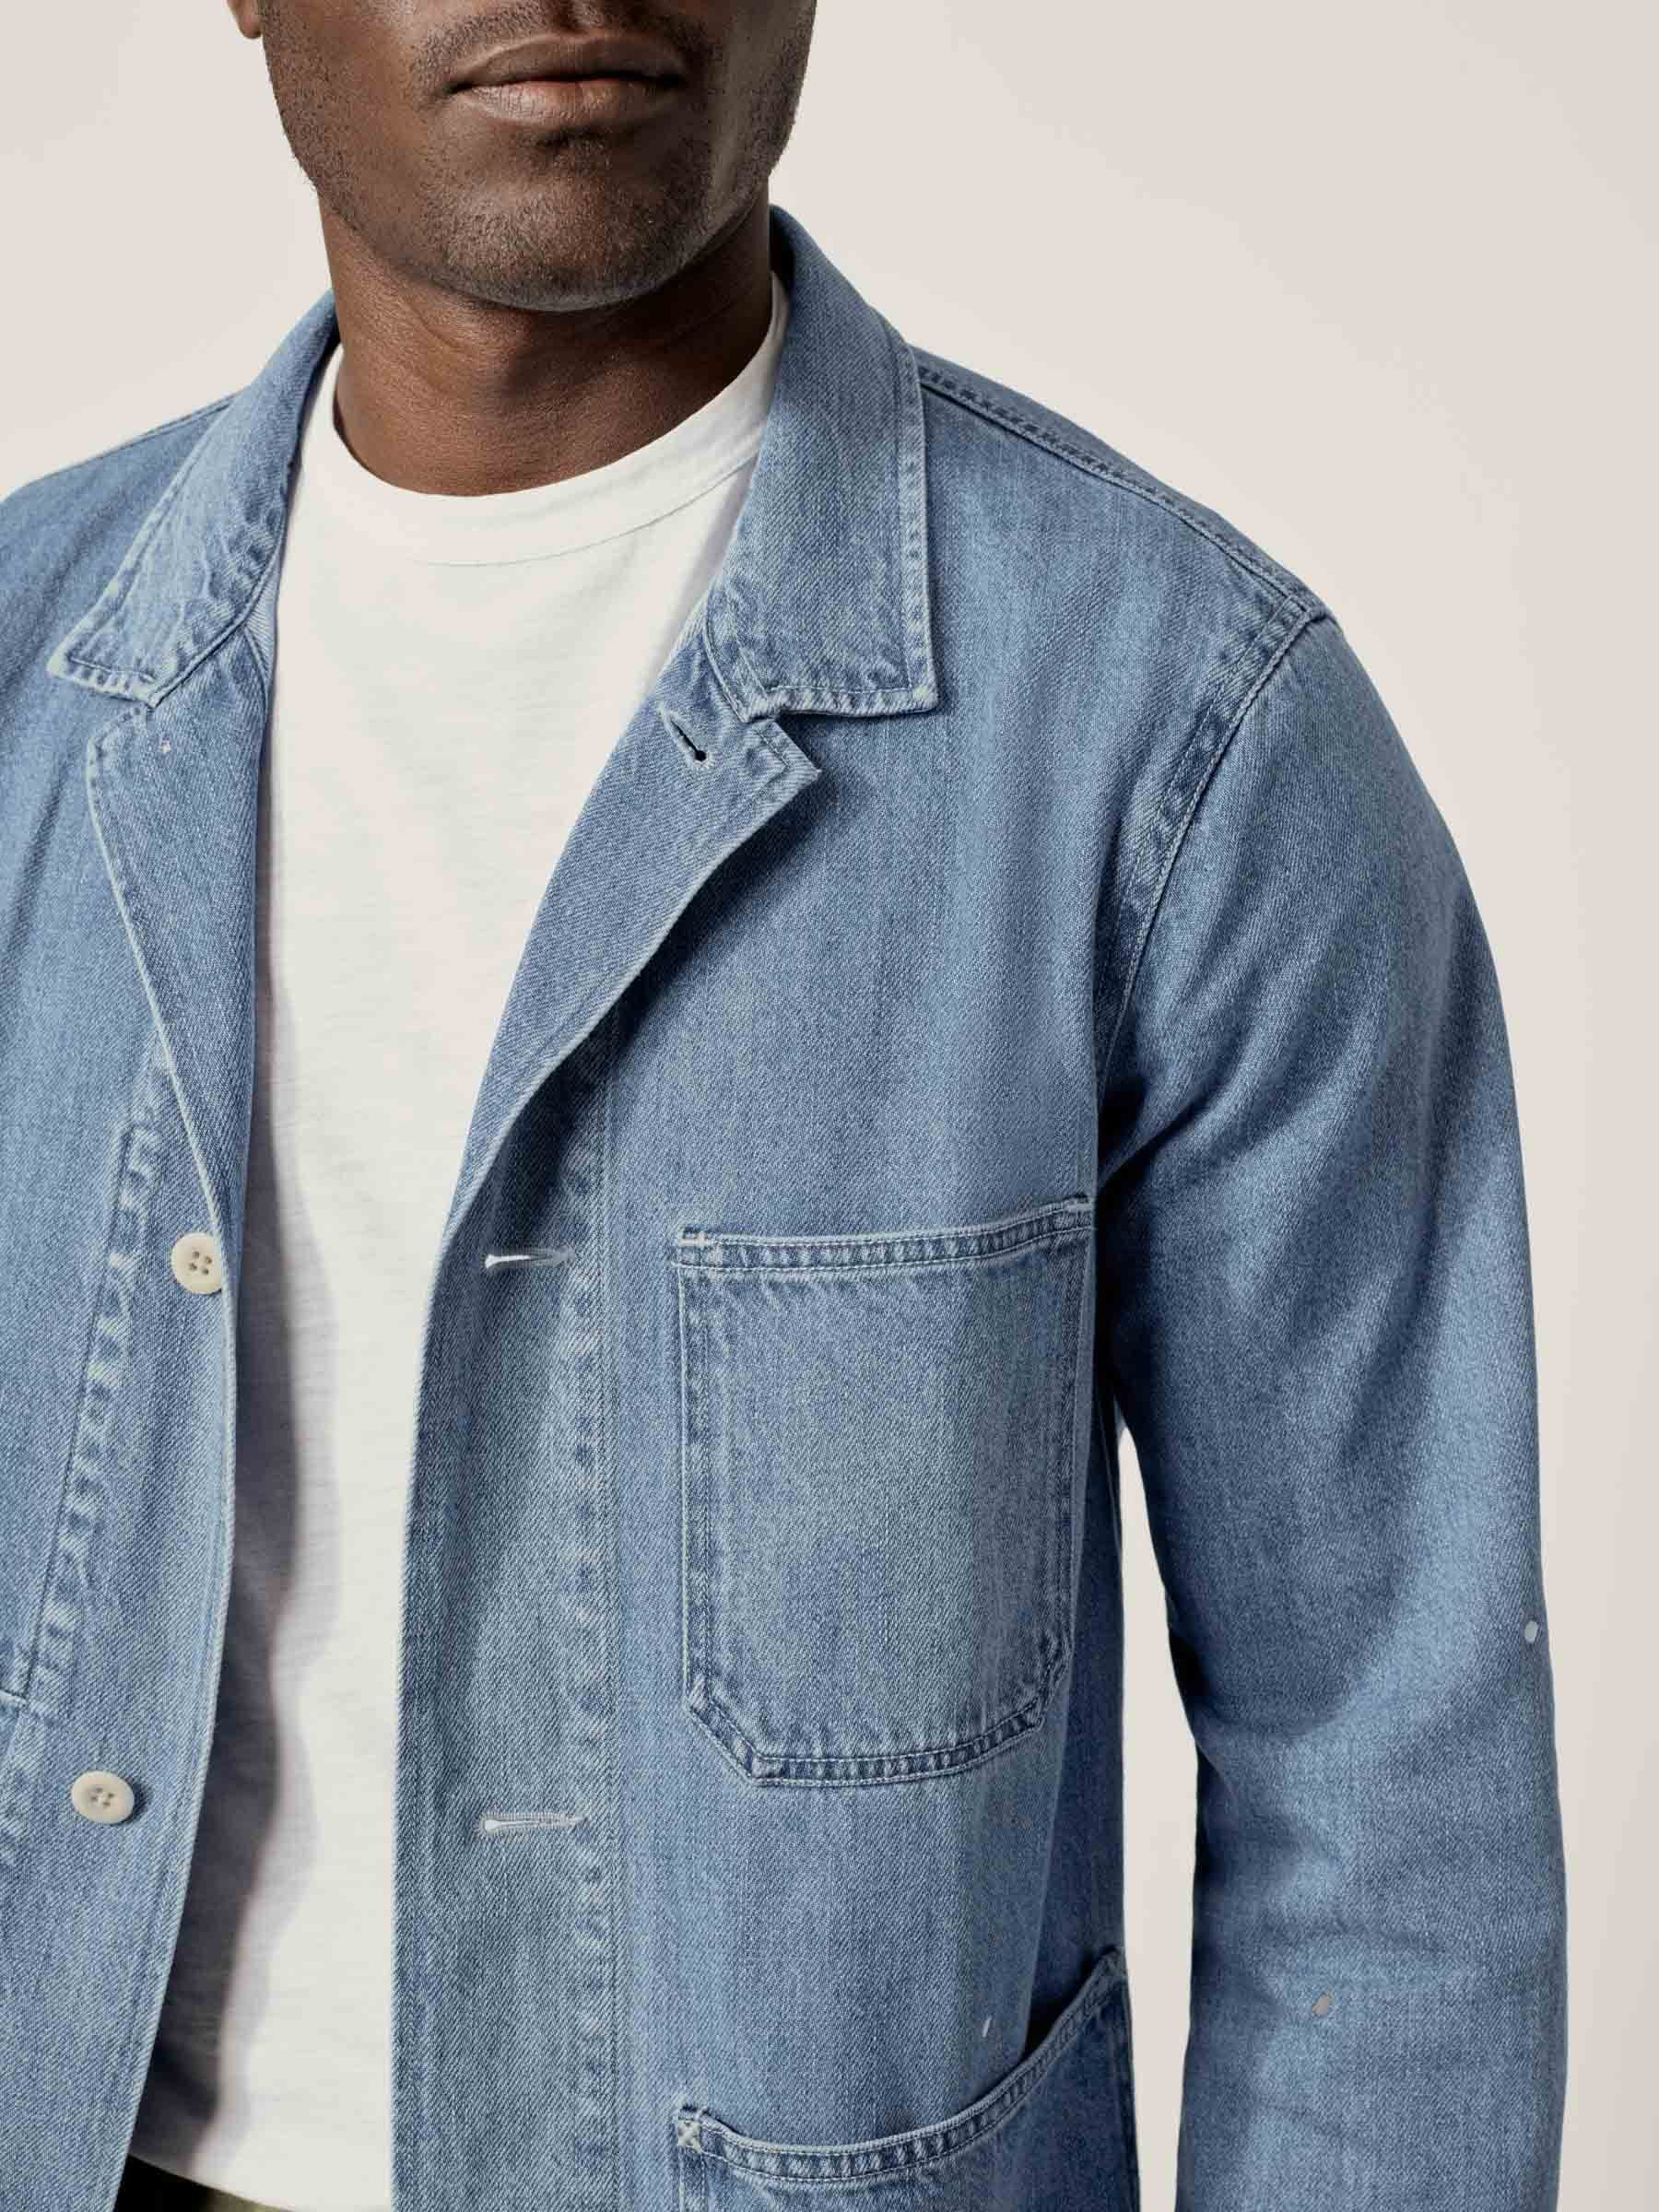 Buck Mason - L007 Denim Chore Jacket